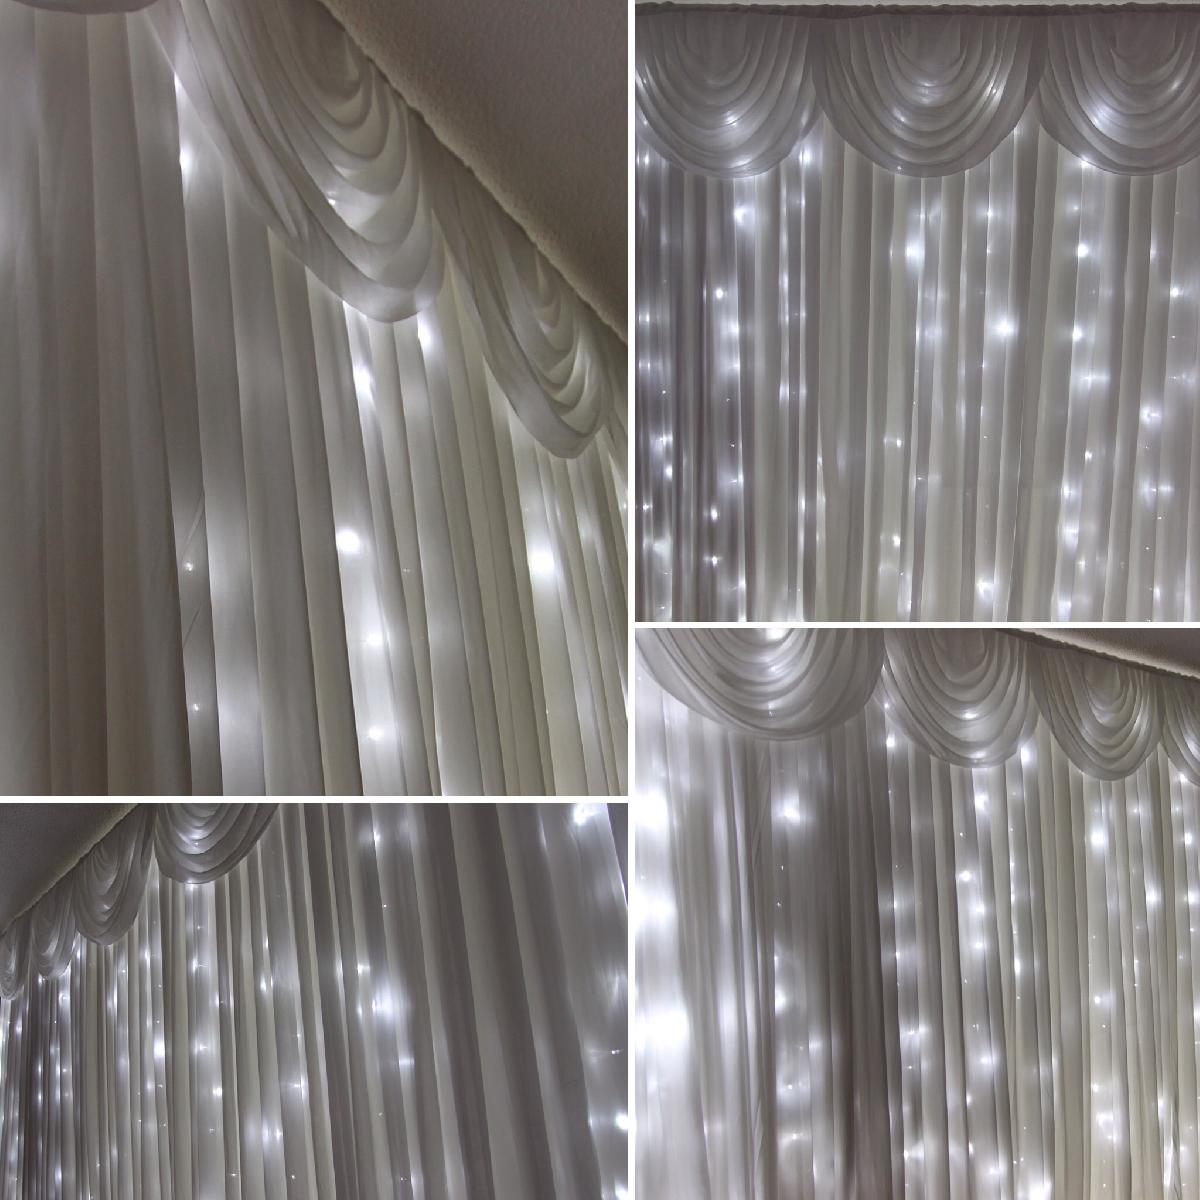 Starlit wedding backdrop available for hire for weddings in Kent.